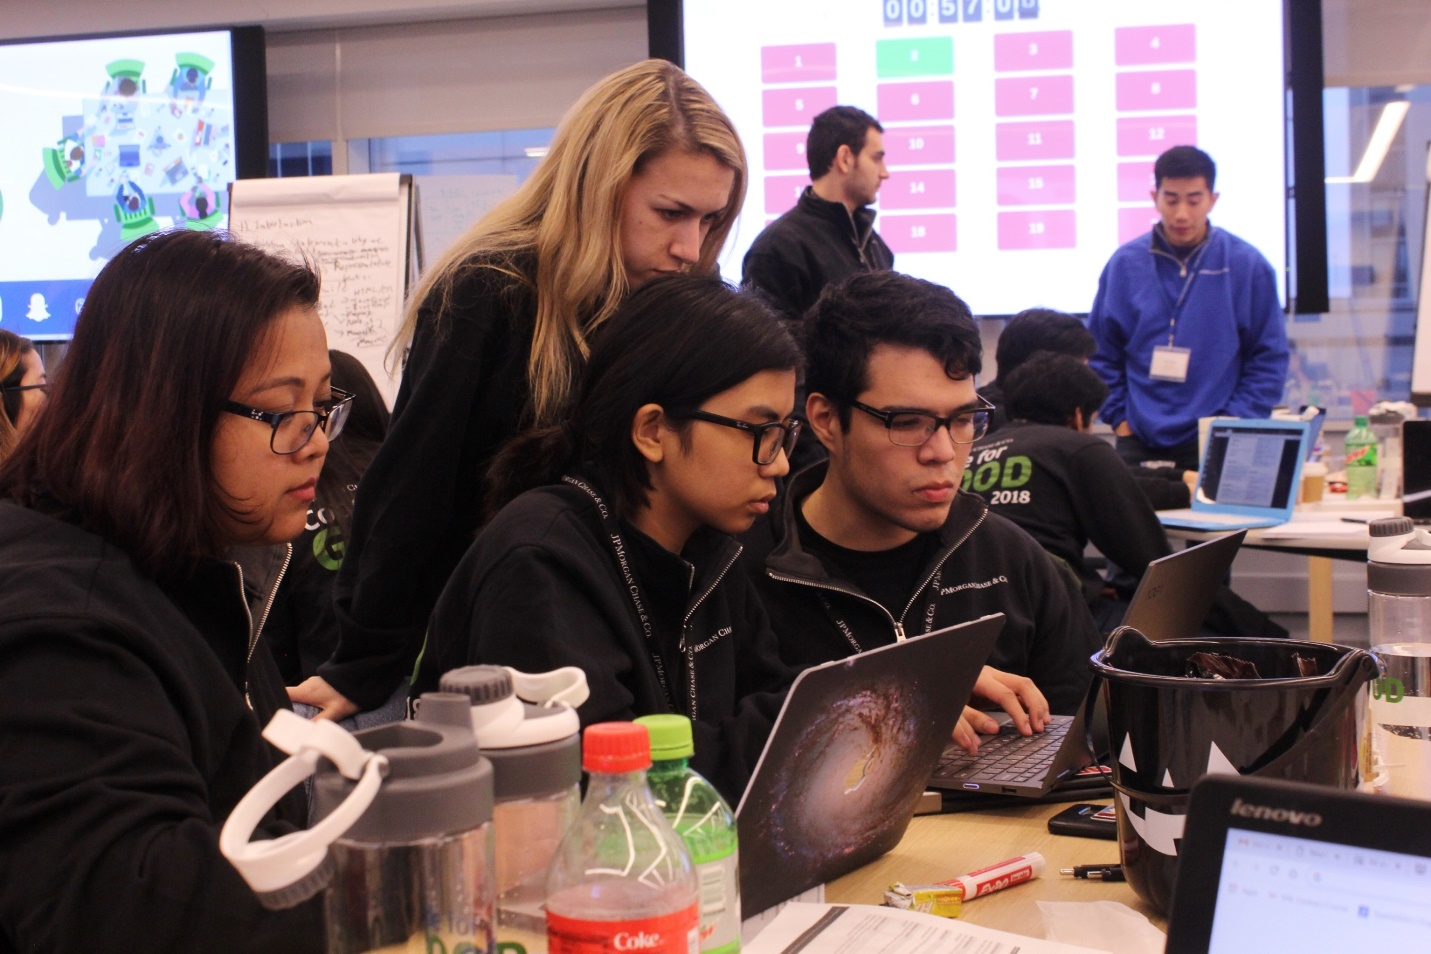 Programmers lost in thought troubleshooting a code bug. Hackathons can engage the talents of young software engineers in environmental or other do-good causes, which can both inspire the engineers and manifest in valuable products.